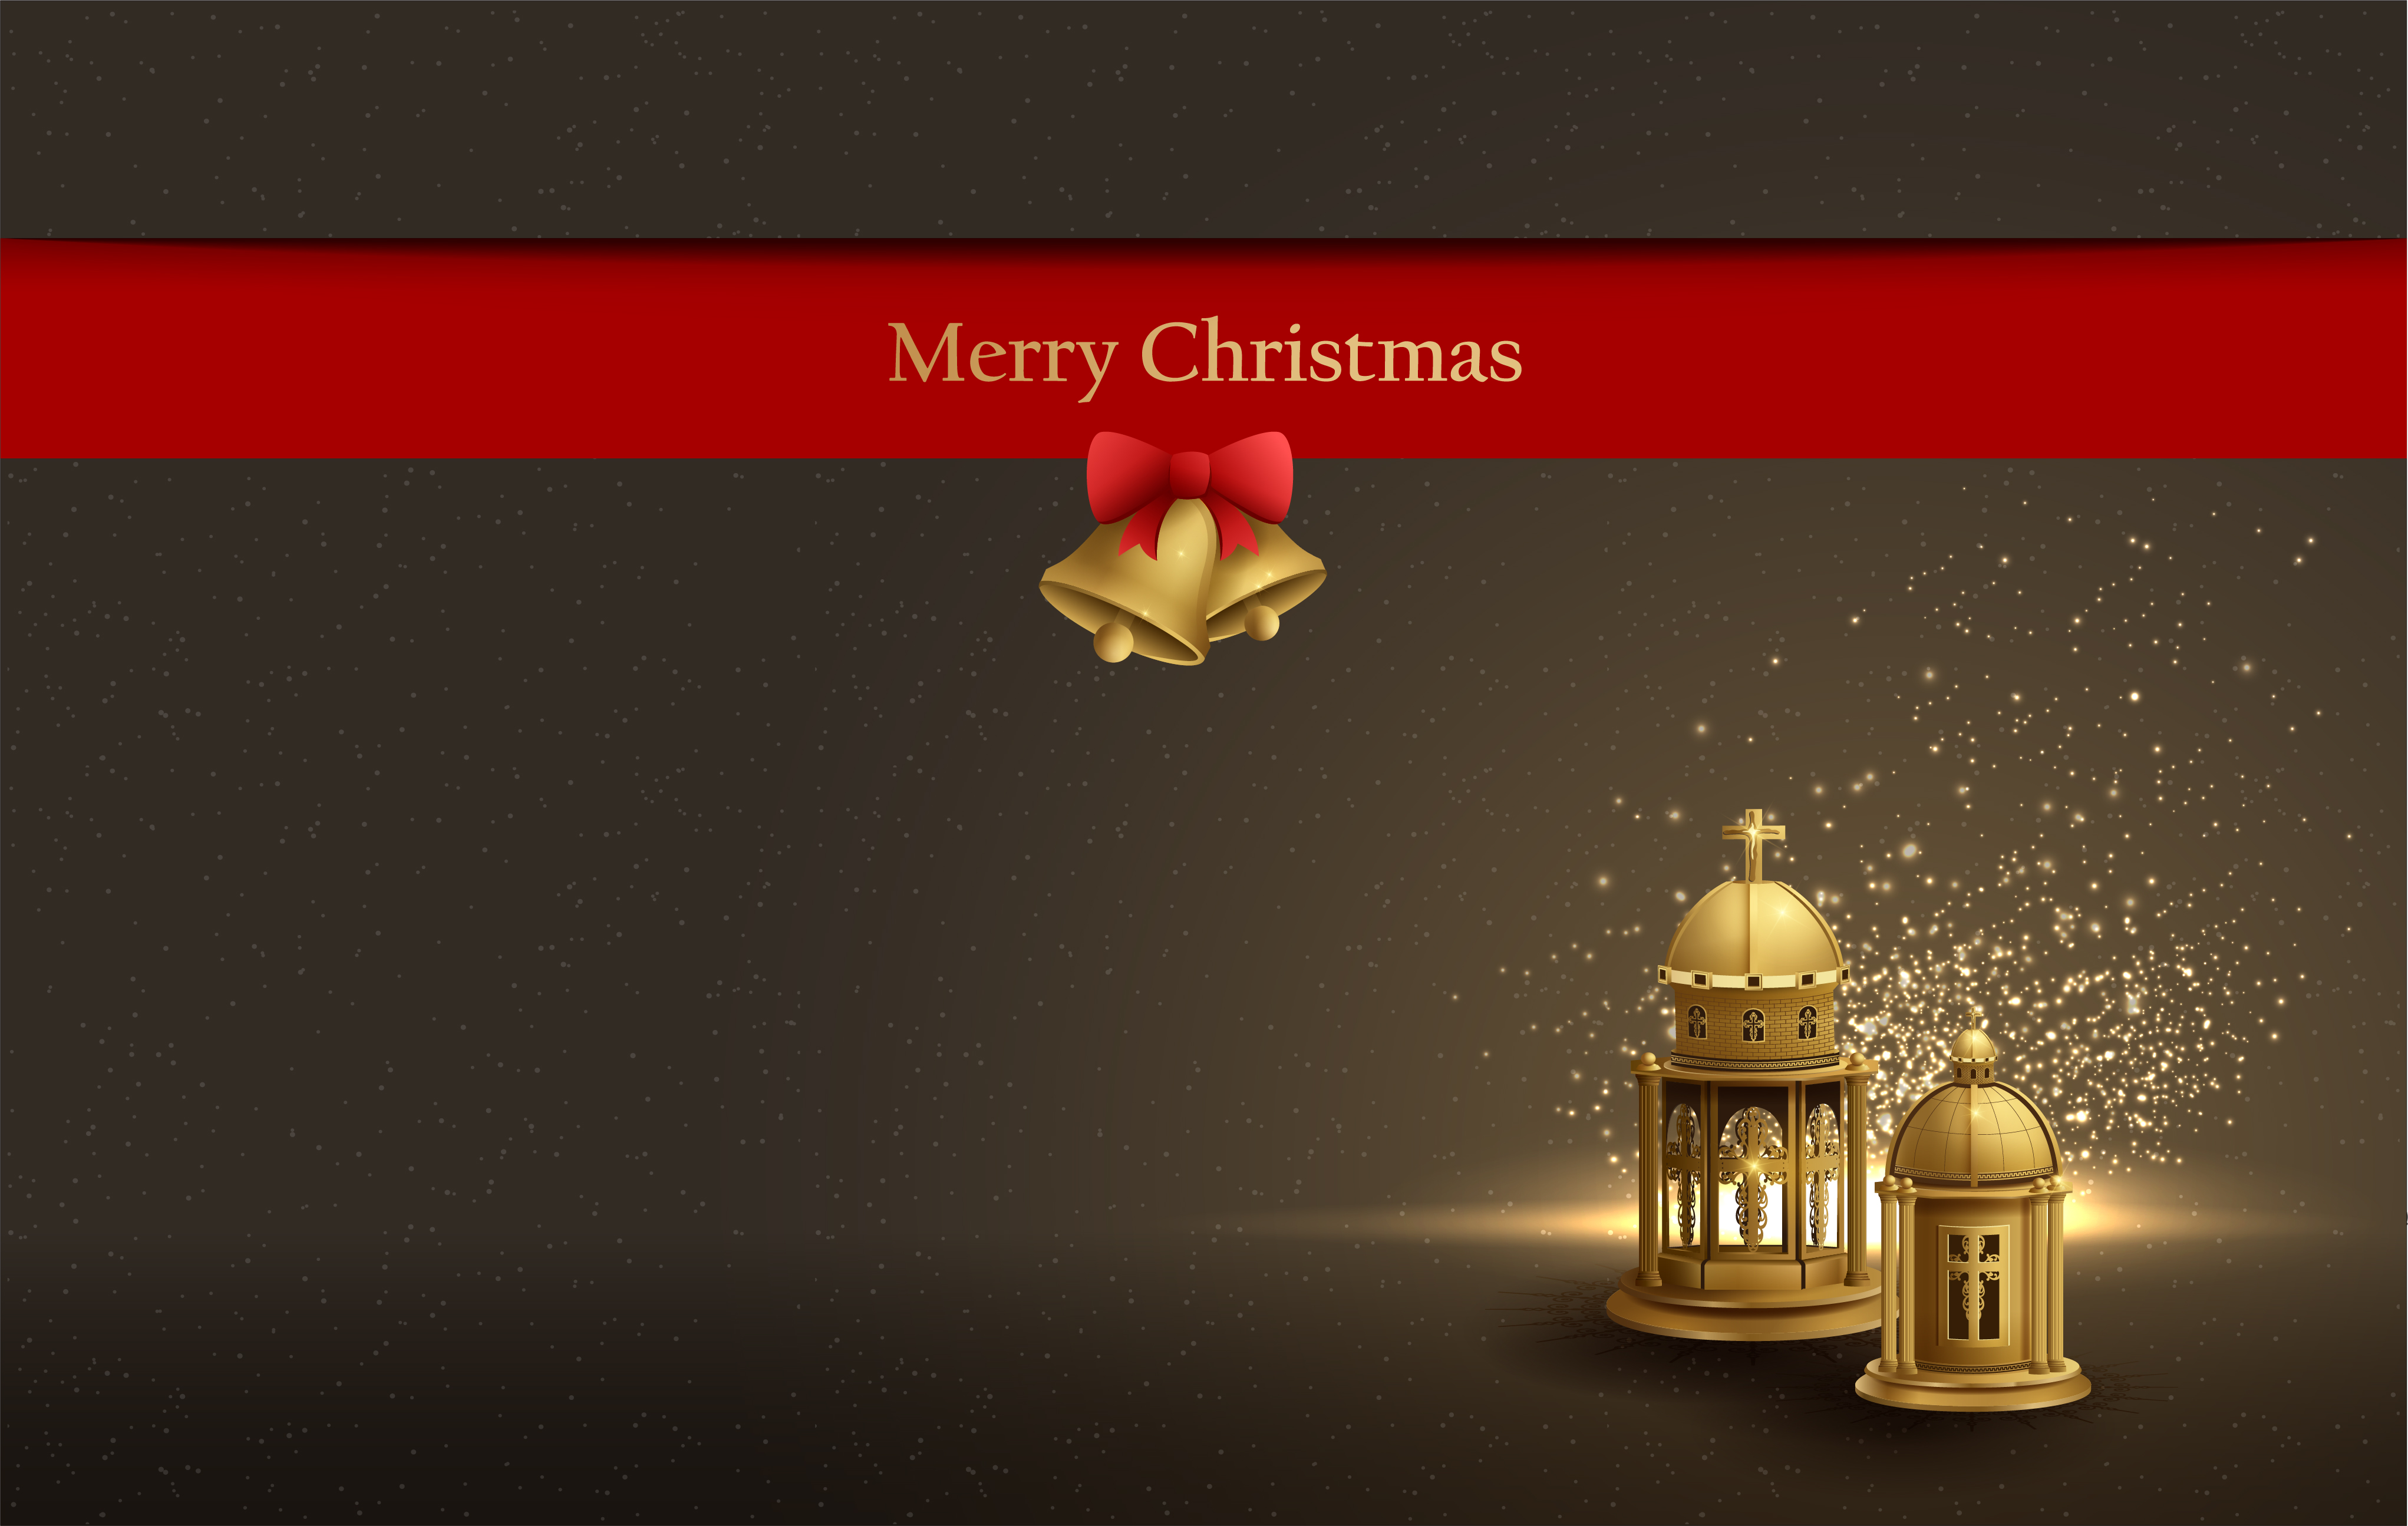 Christmas Card Design Background With Golden Church Lanterns Download Free Vectors Clipart Graphics Vector Art